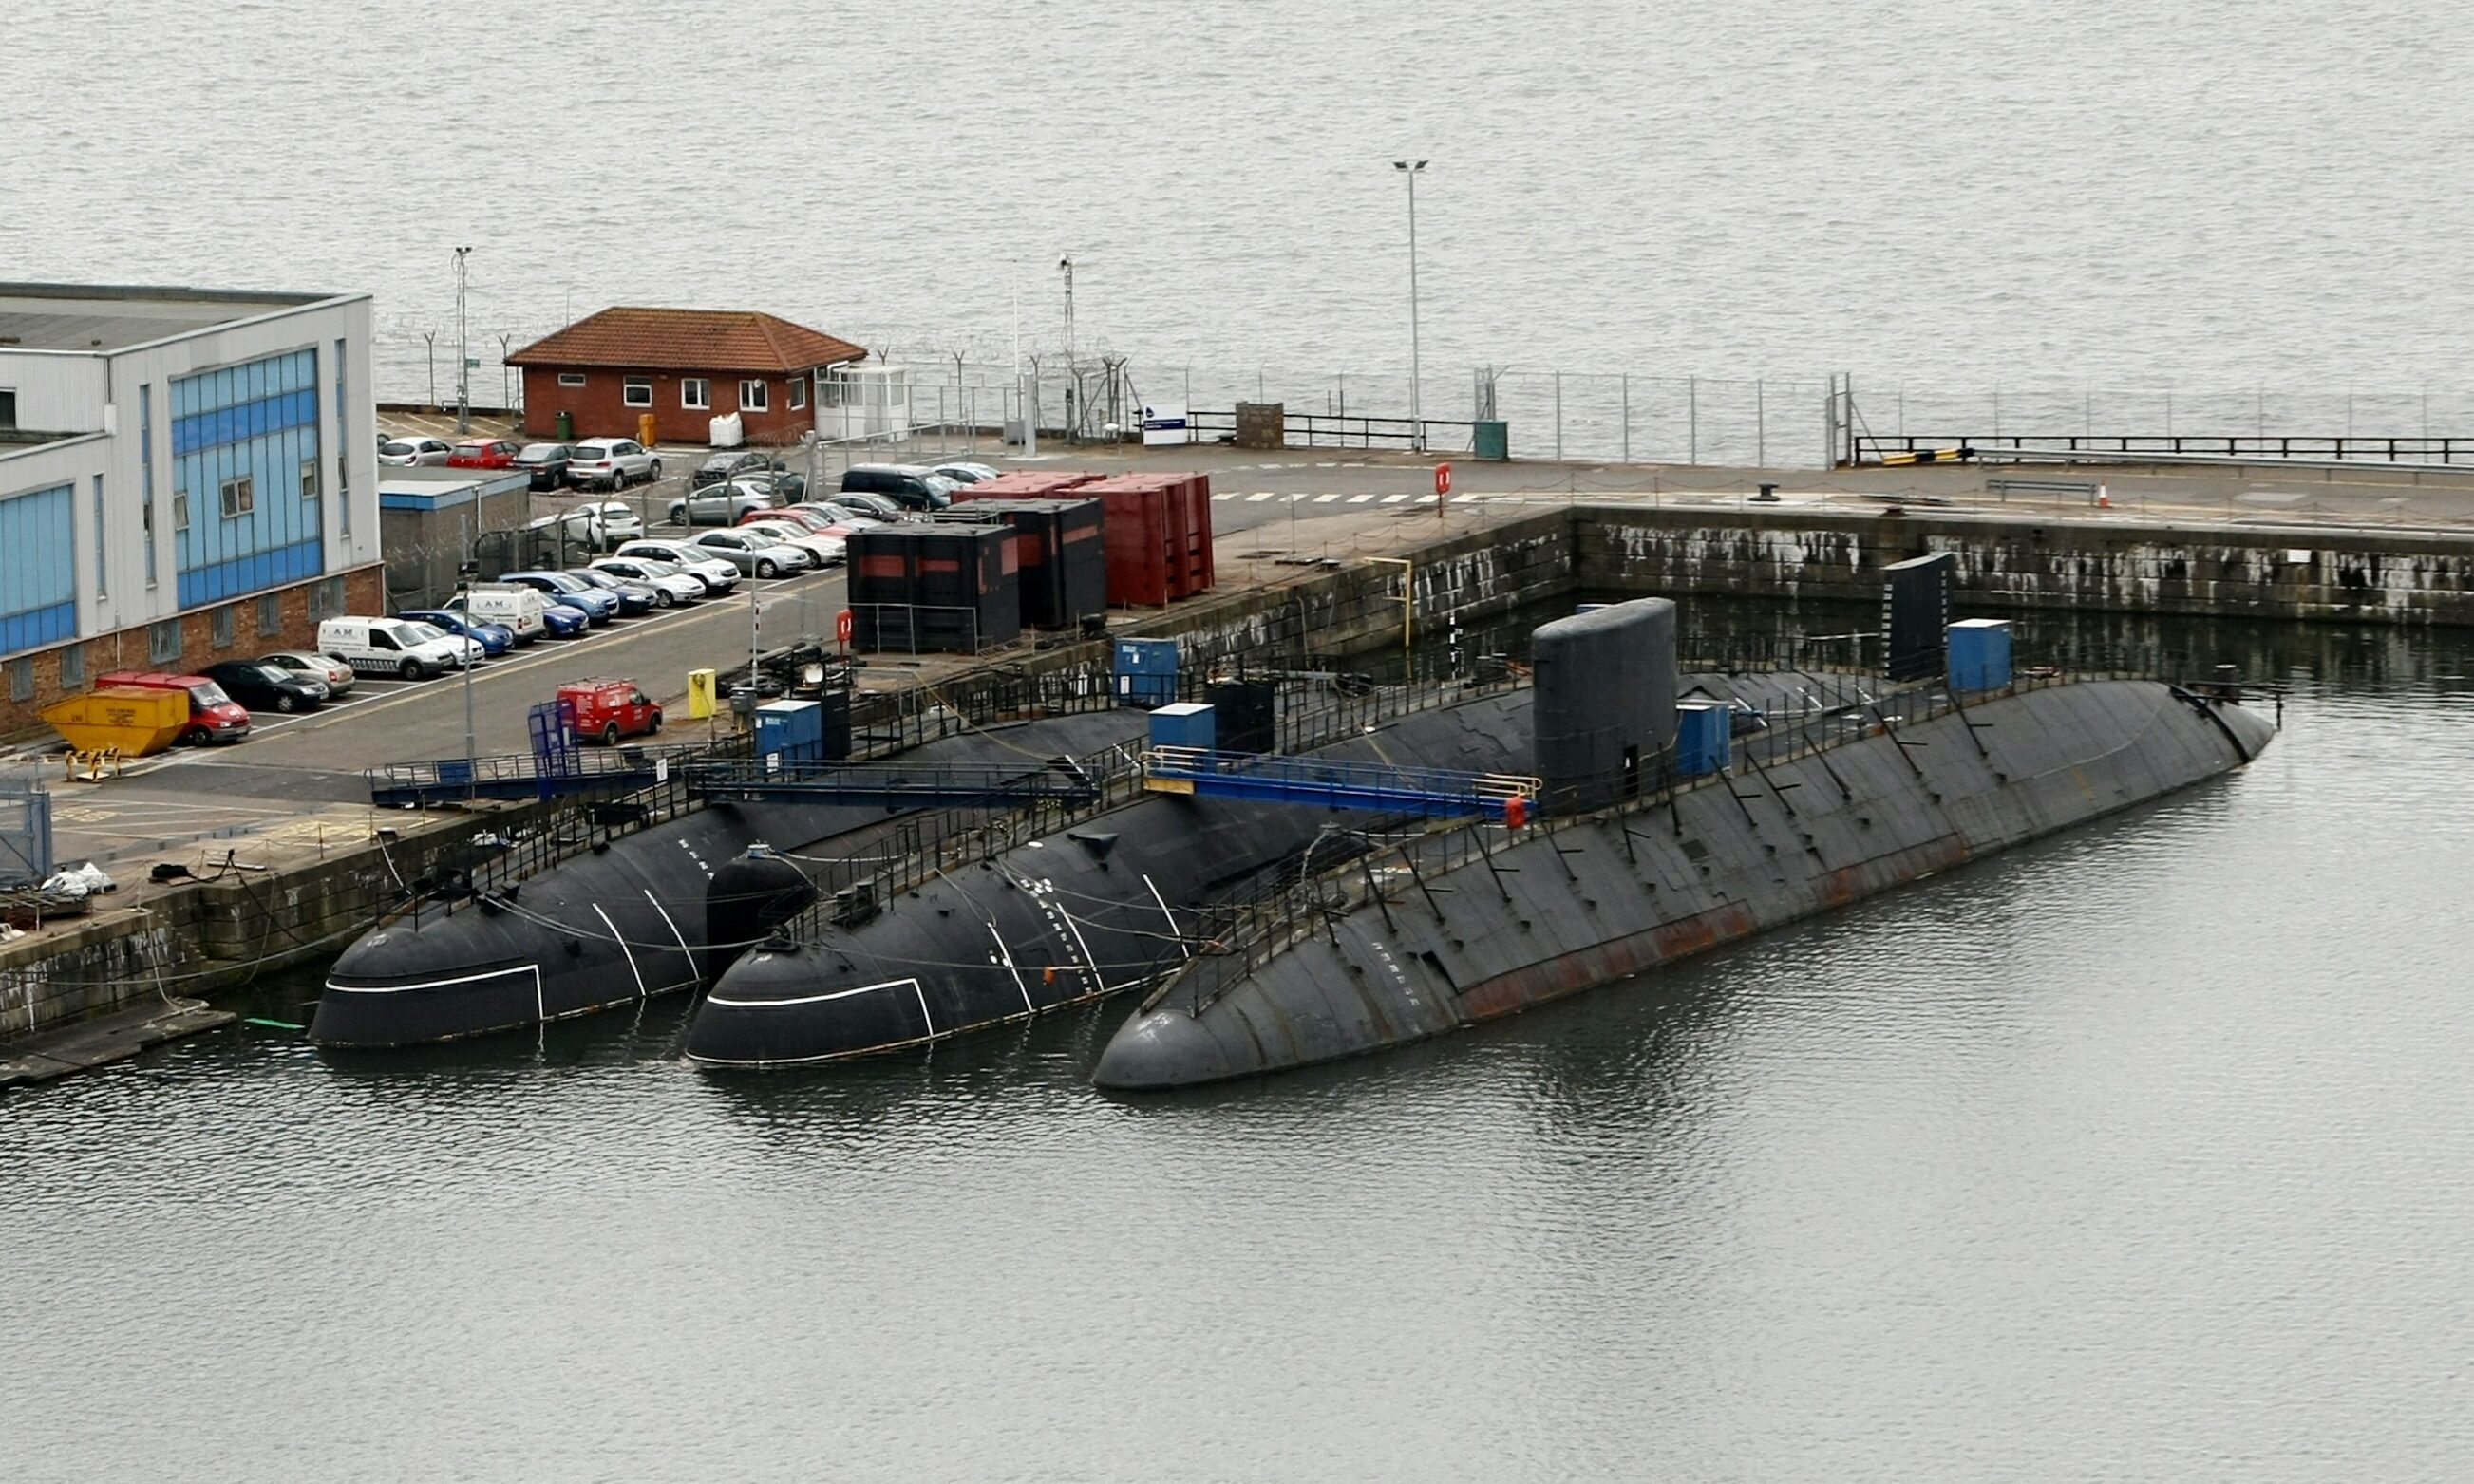 Some of the subs stored at Rosyth